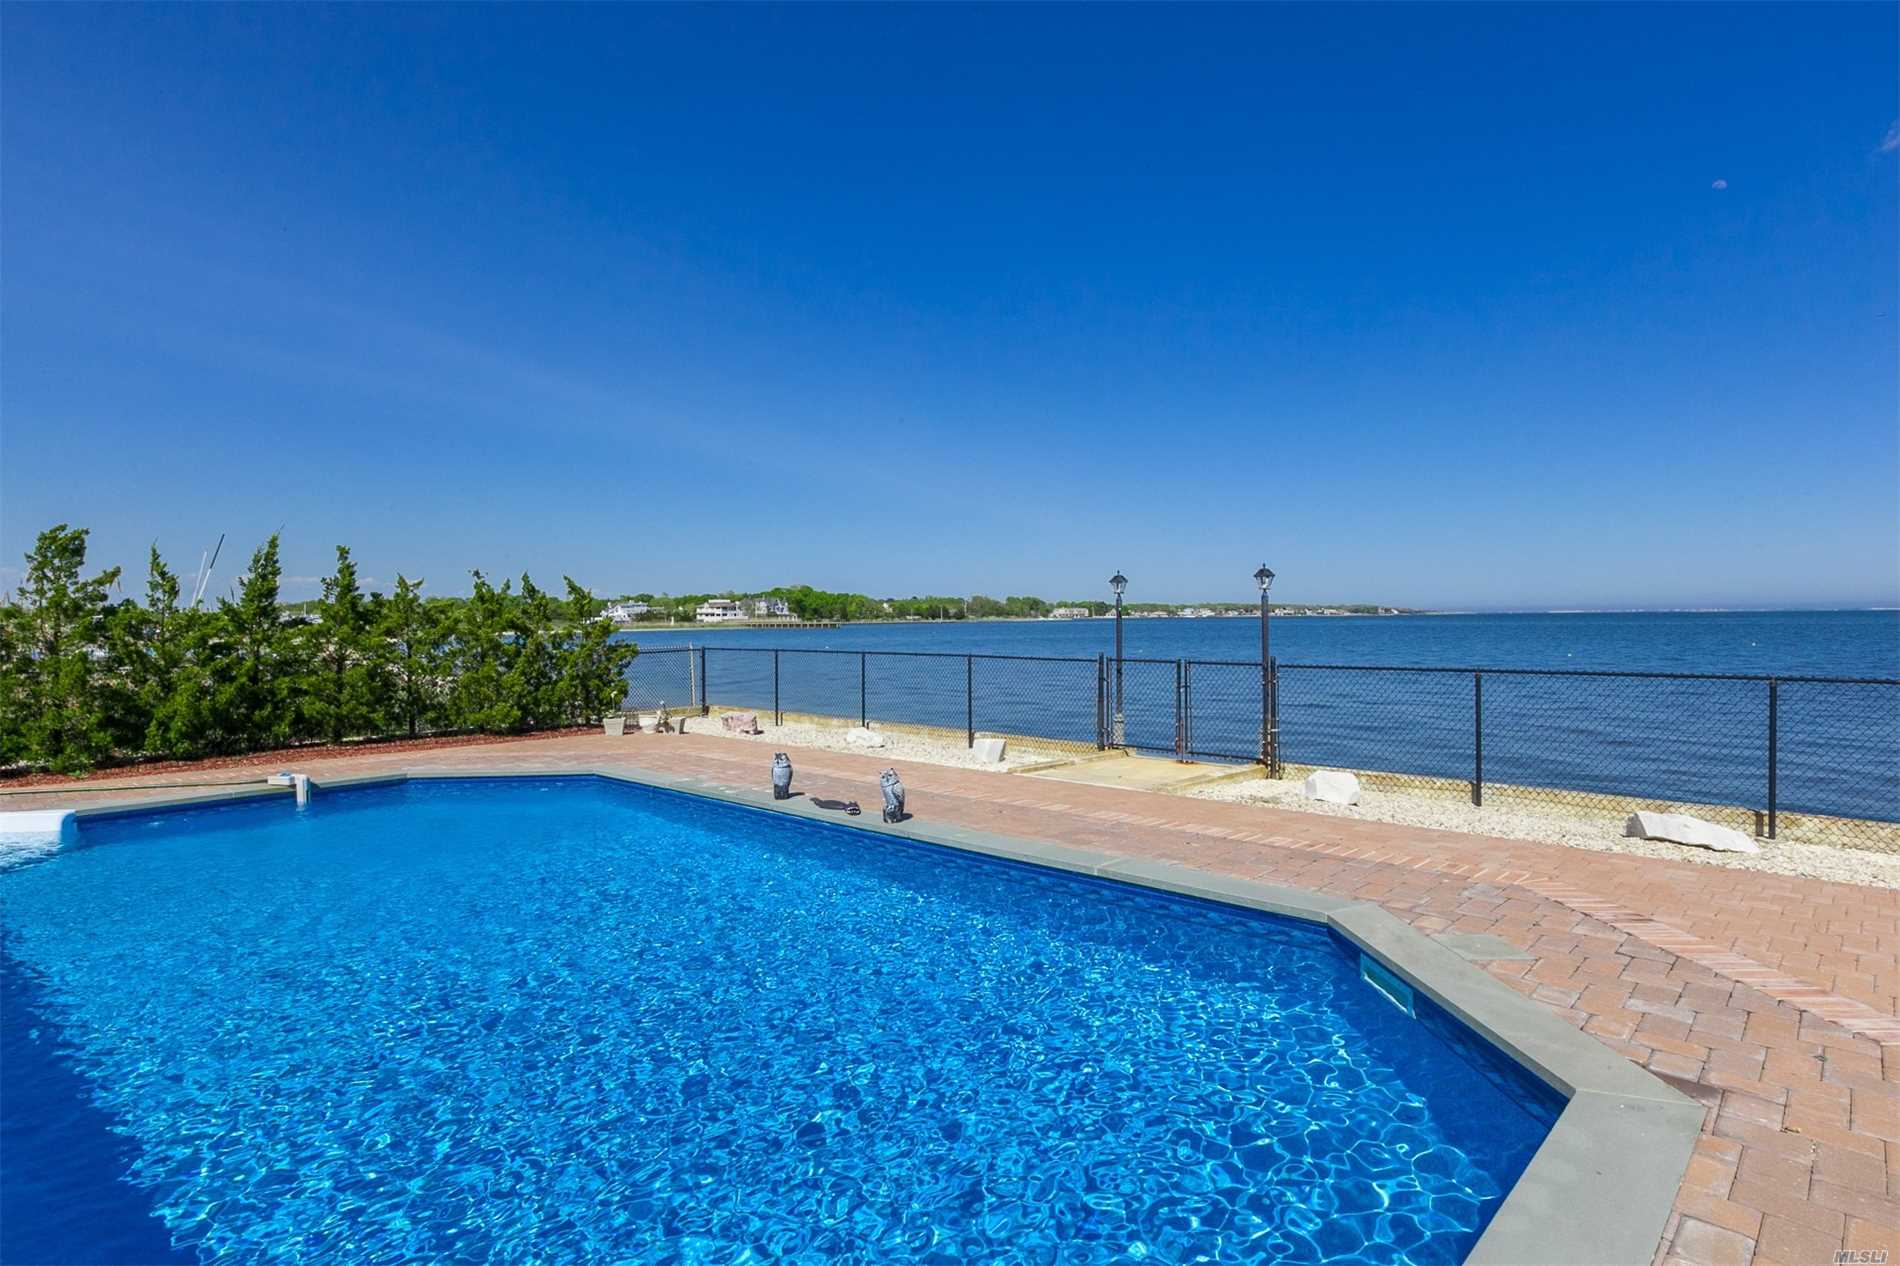 Incredible Bayfront Home With Amazing Waterviews Features: Great Room With Floor To Ceiling Windows & Fireplace, Eik W/Granite Counter Tops, Formal Liv Rm/Game Room, Master Bedroom Suite W/Walk In Closet, Full Bathroom And Terrace, 3 Additional Bedrooms, 1 Car Garage. Updated Central Air Conditioning & Heating System, In Ground Pool W/Pavers, Stunning Views Of The Bay. You Don't Want To Miss This One!!!